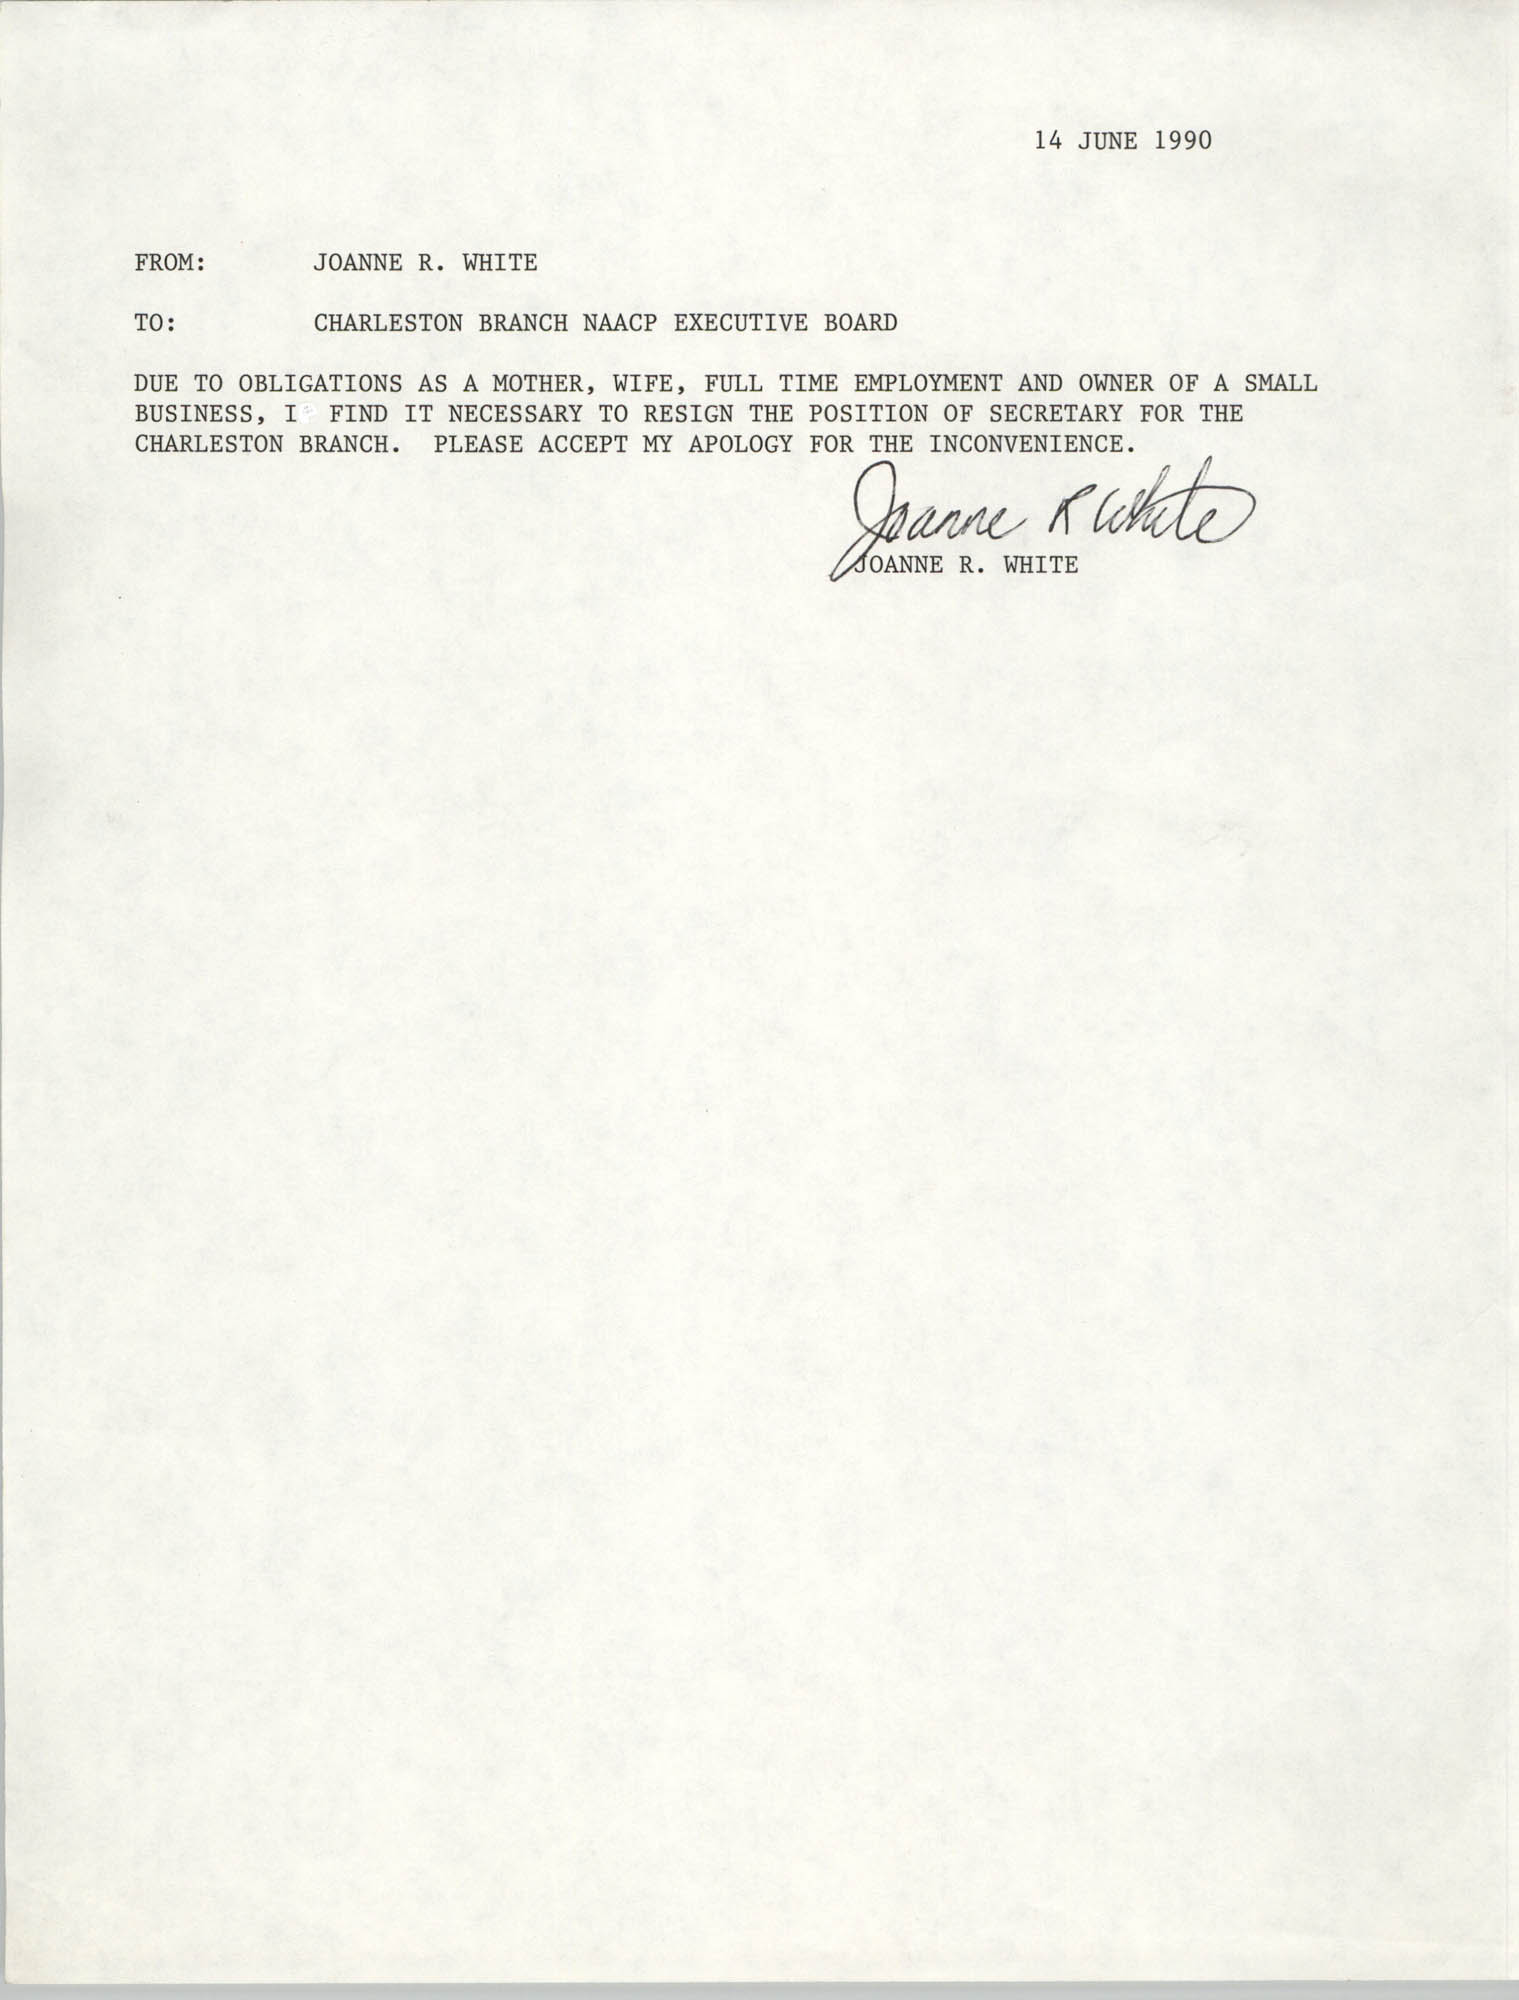 Charleston Branch of the NAACP Memorandum, June 14, 1990